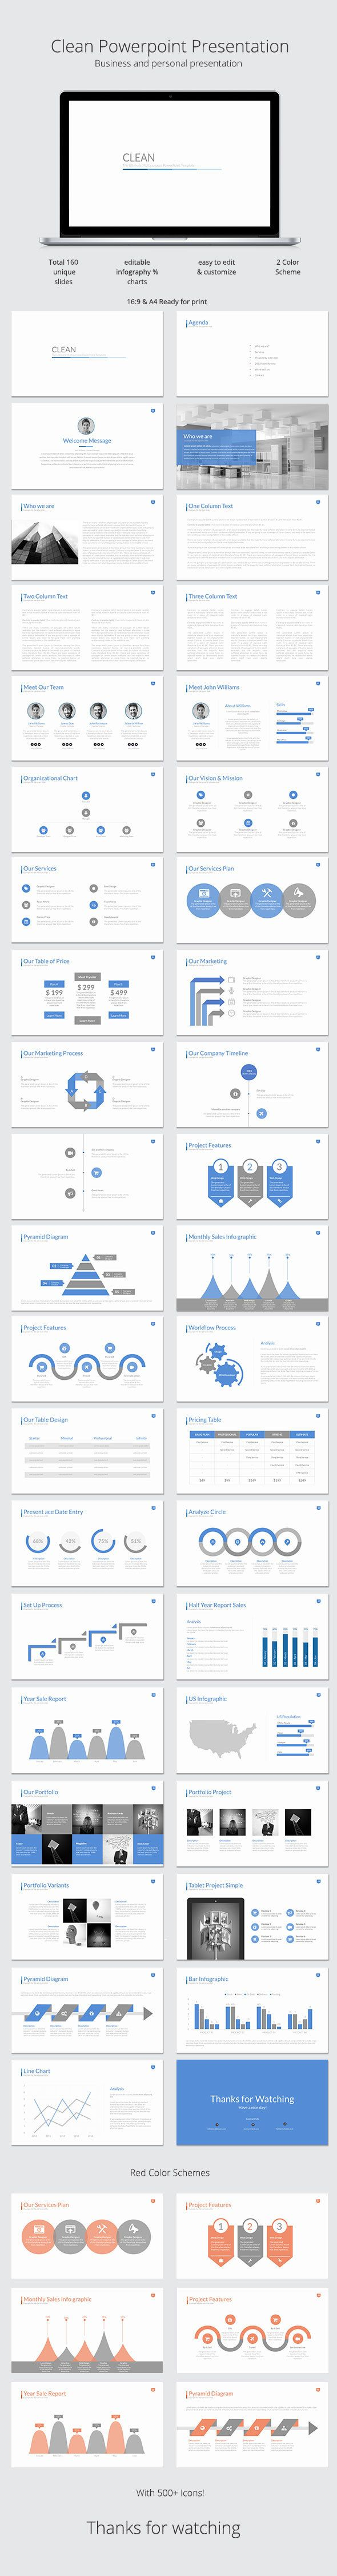 Coolmathgamesus  Fascinating  Ideas About Powerpoint Presentations On Pinterest With Exquisite Clean Powerpoint Template With Easy On The Eye Word Art In Powerpoint Also Transformational Leadership Powerpoint In Addition Cultural Awareness Powerpoint And Pie Charts In Powerpoint As Well As How To Copy A Pdf Into Powerpoint Additionally Mind Map Powerpoint Template From Pinterestcom With Coolmathgamesus  Exquisite  Ideas About Powerpoint Presentations On Pinterest With Easy On The Eye Clean Powerpoint Template And Fascinating Word Art In Powerpoint Also Transformational Leadership Powerpoint In Addition Cultural Awareness Powerpoint From Pinterestcom